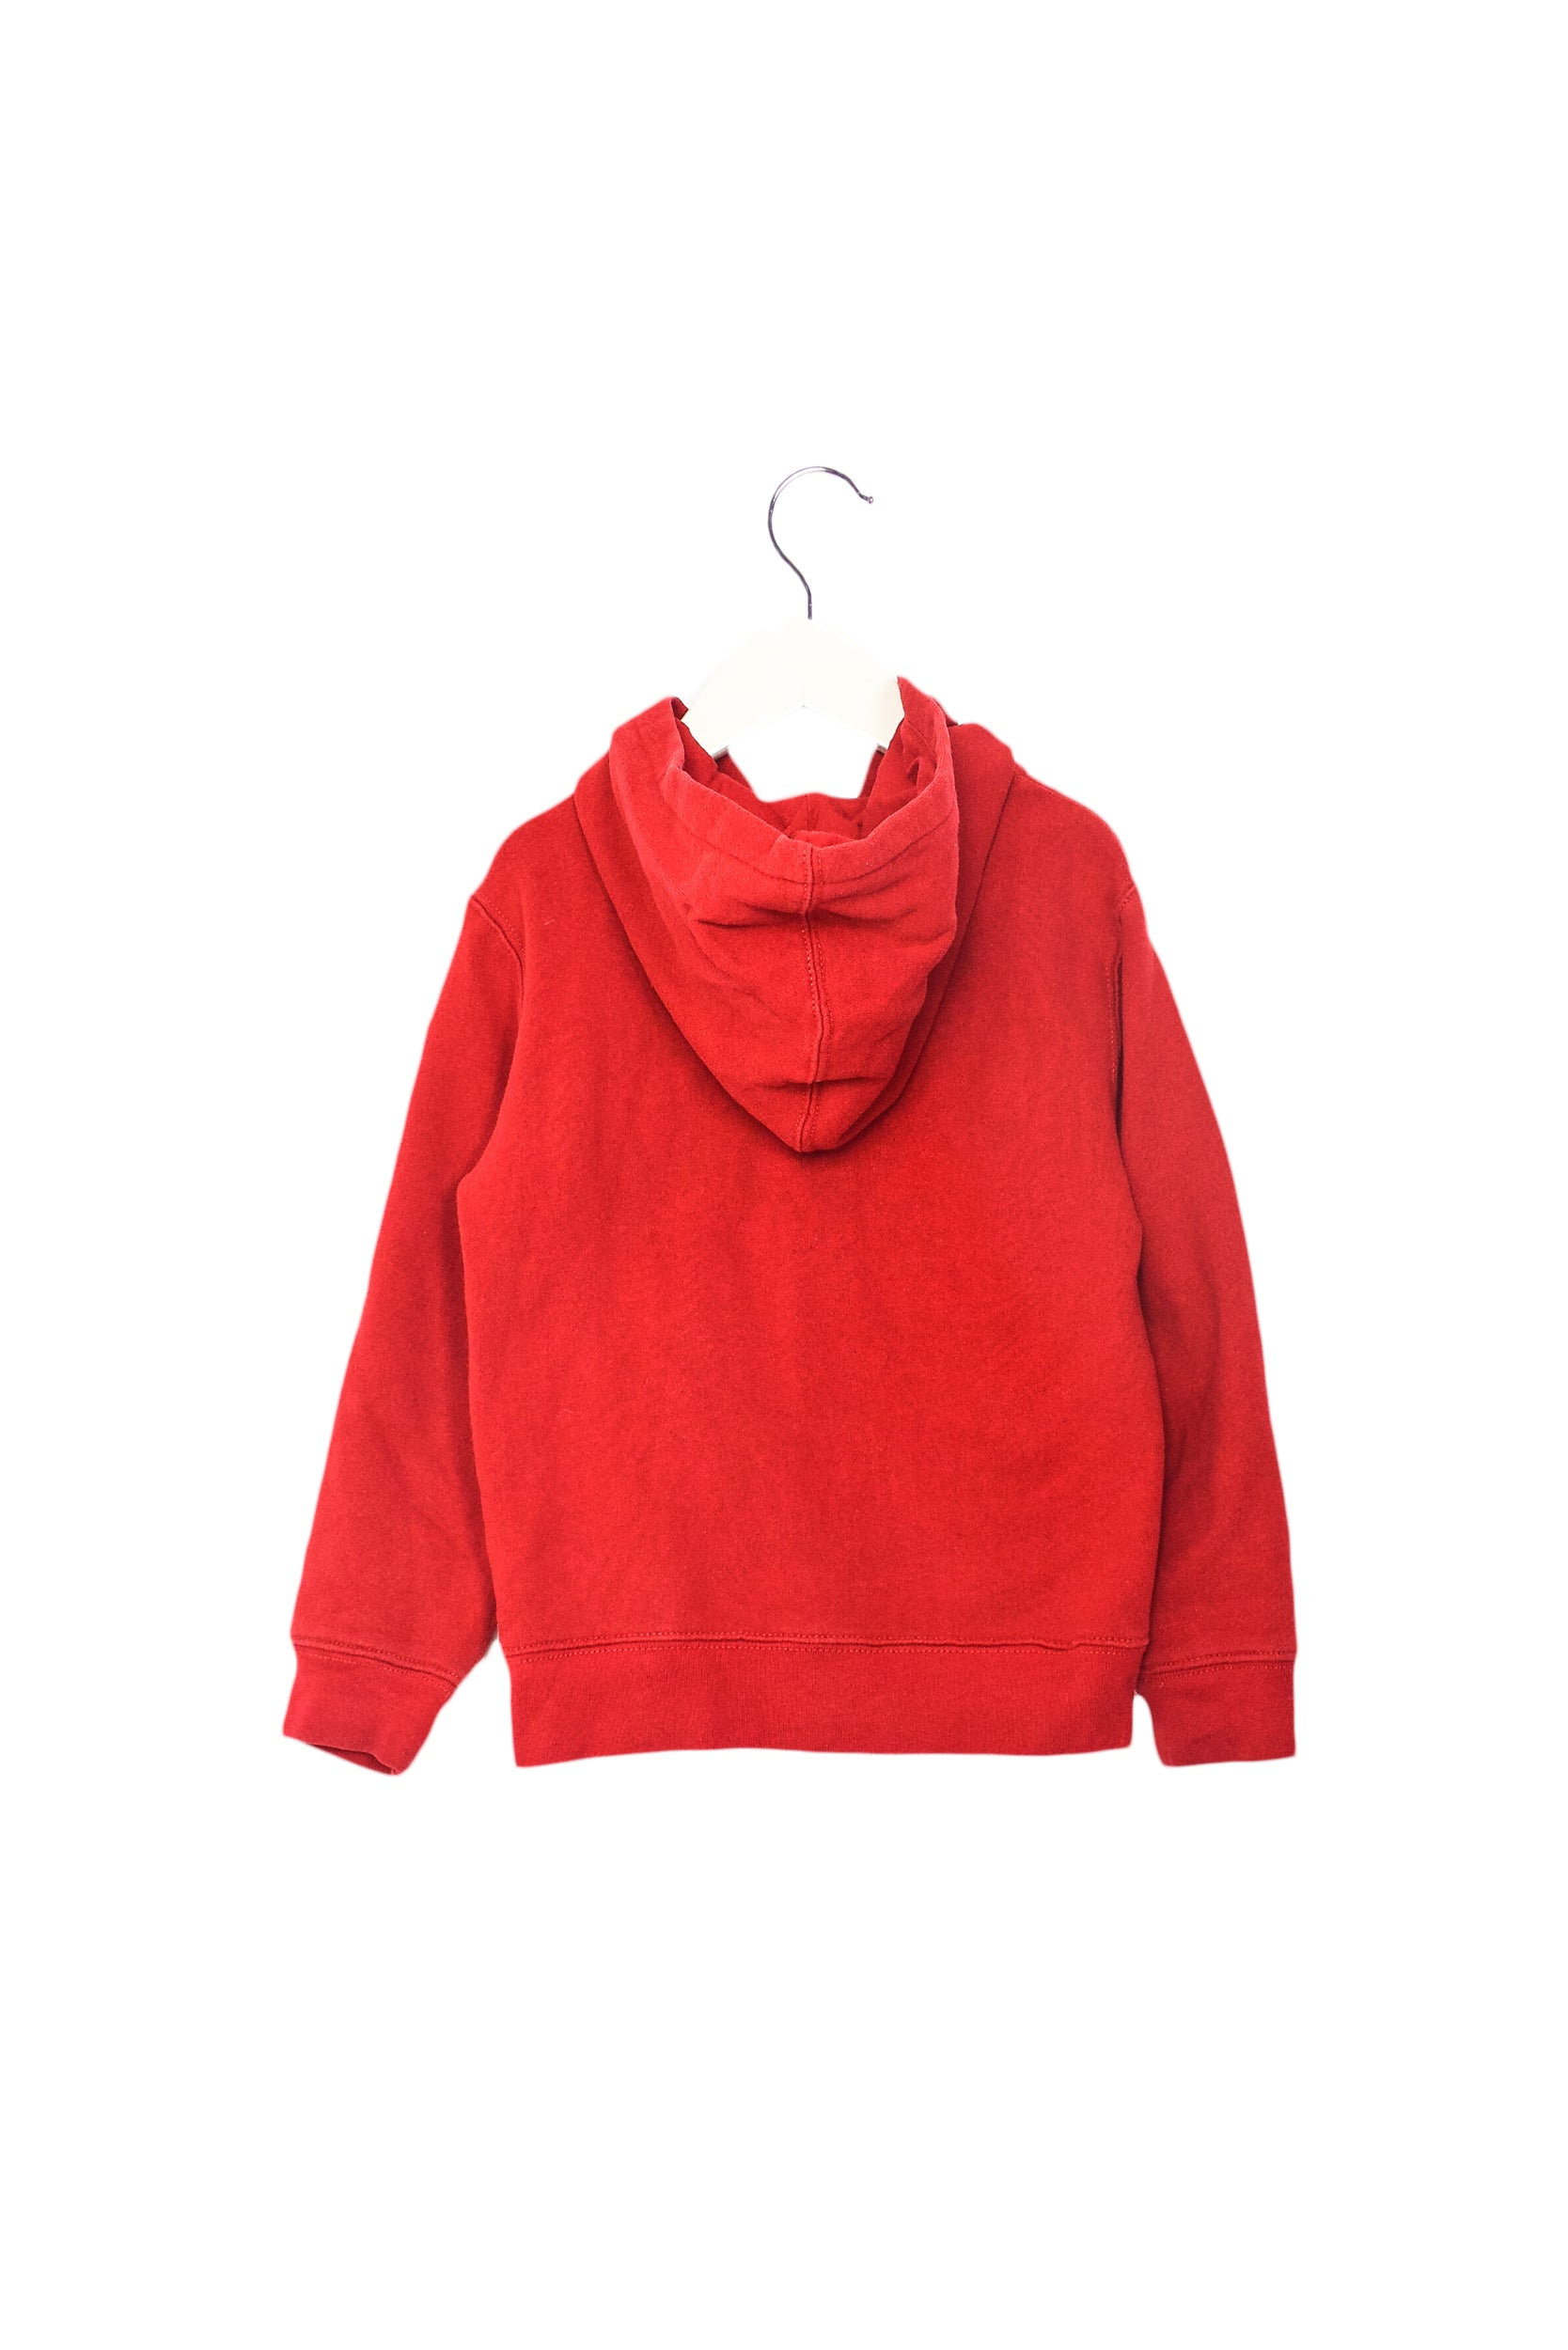 Sweatshirt 5T at Retykle